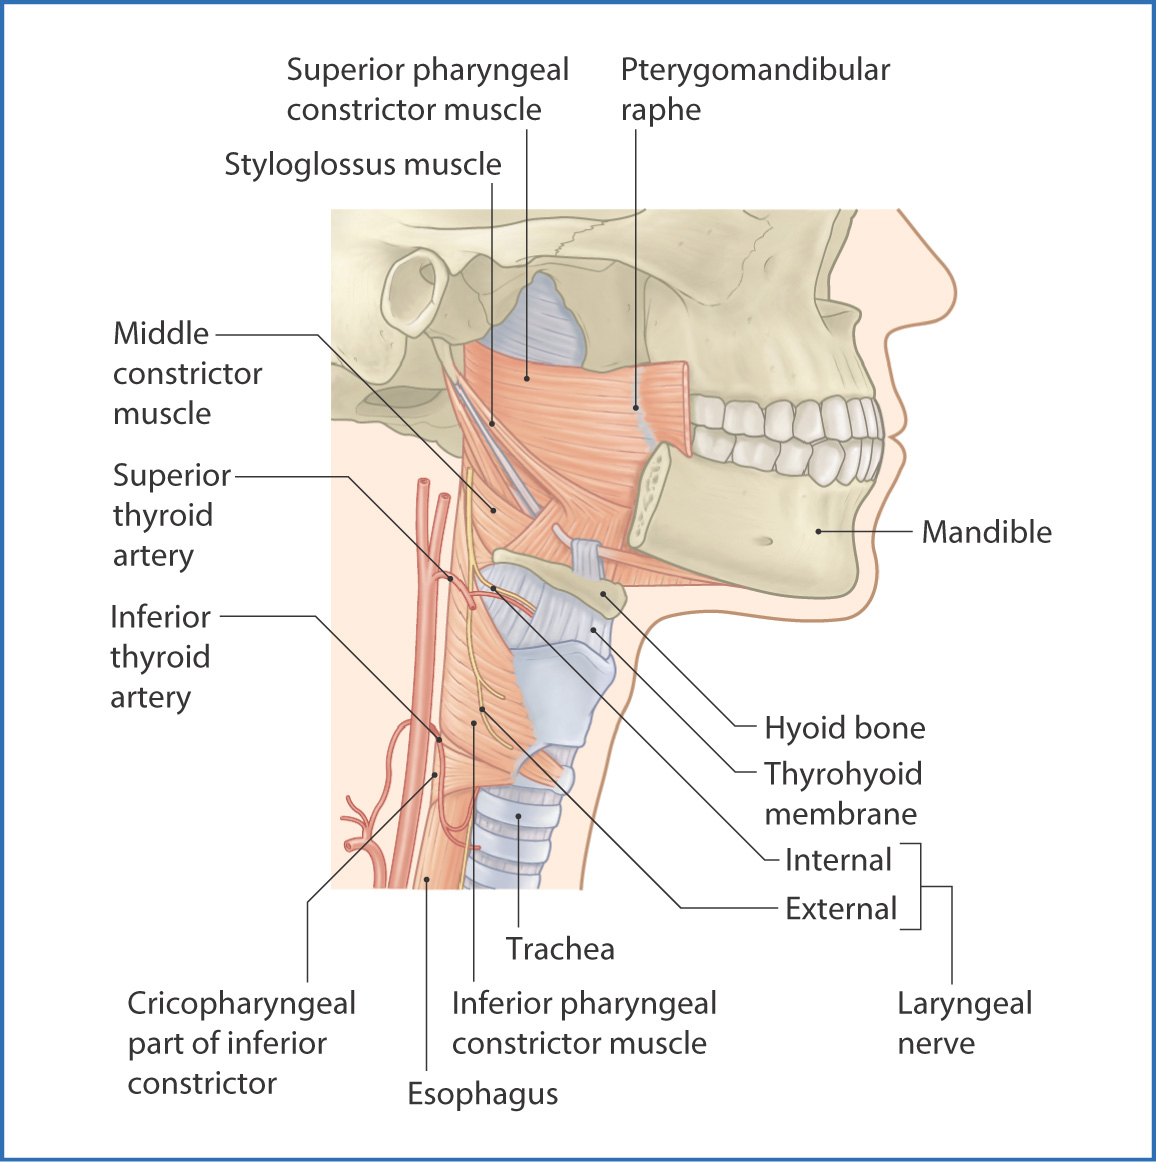 Pharynx and larynx basicmedical key figure 102 pharyngeal constrictor muscles pooptronica